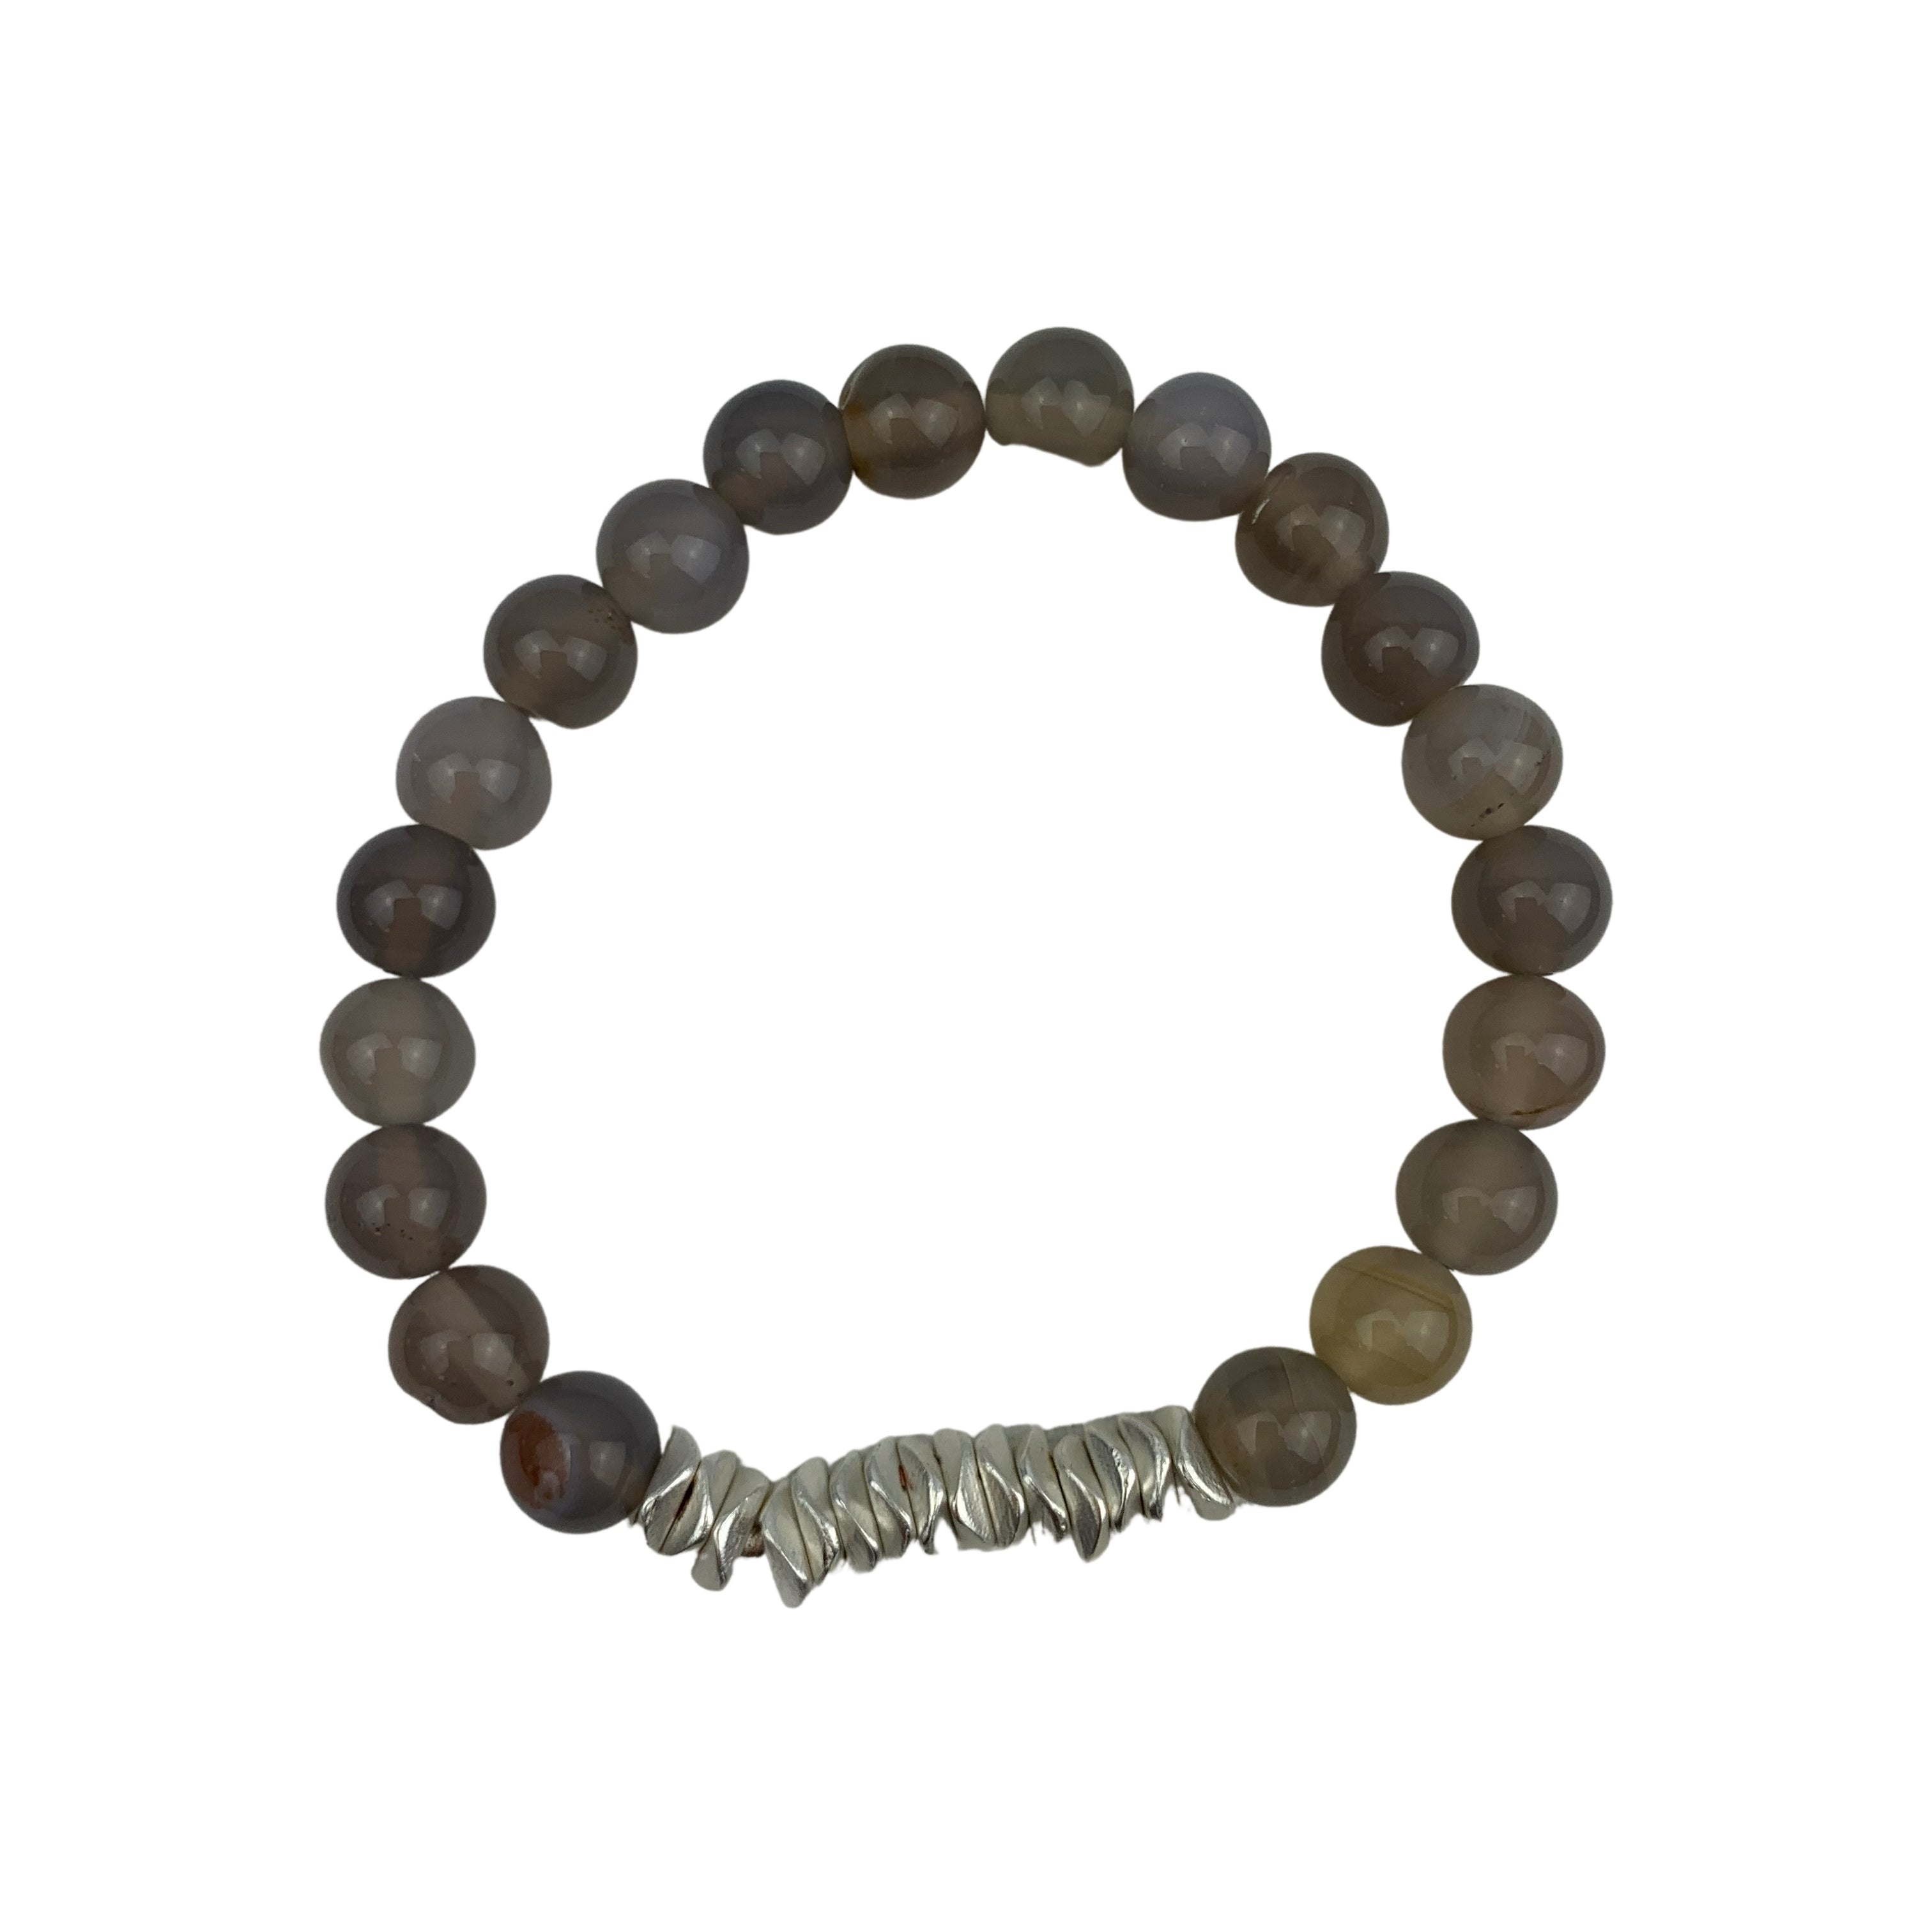 Merx Beaded Bracelet with Silver coloured pebbles - Chic Thrills